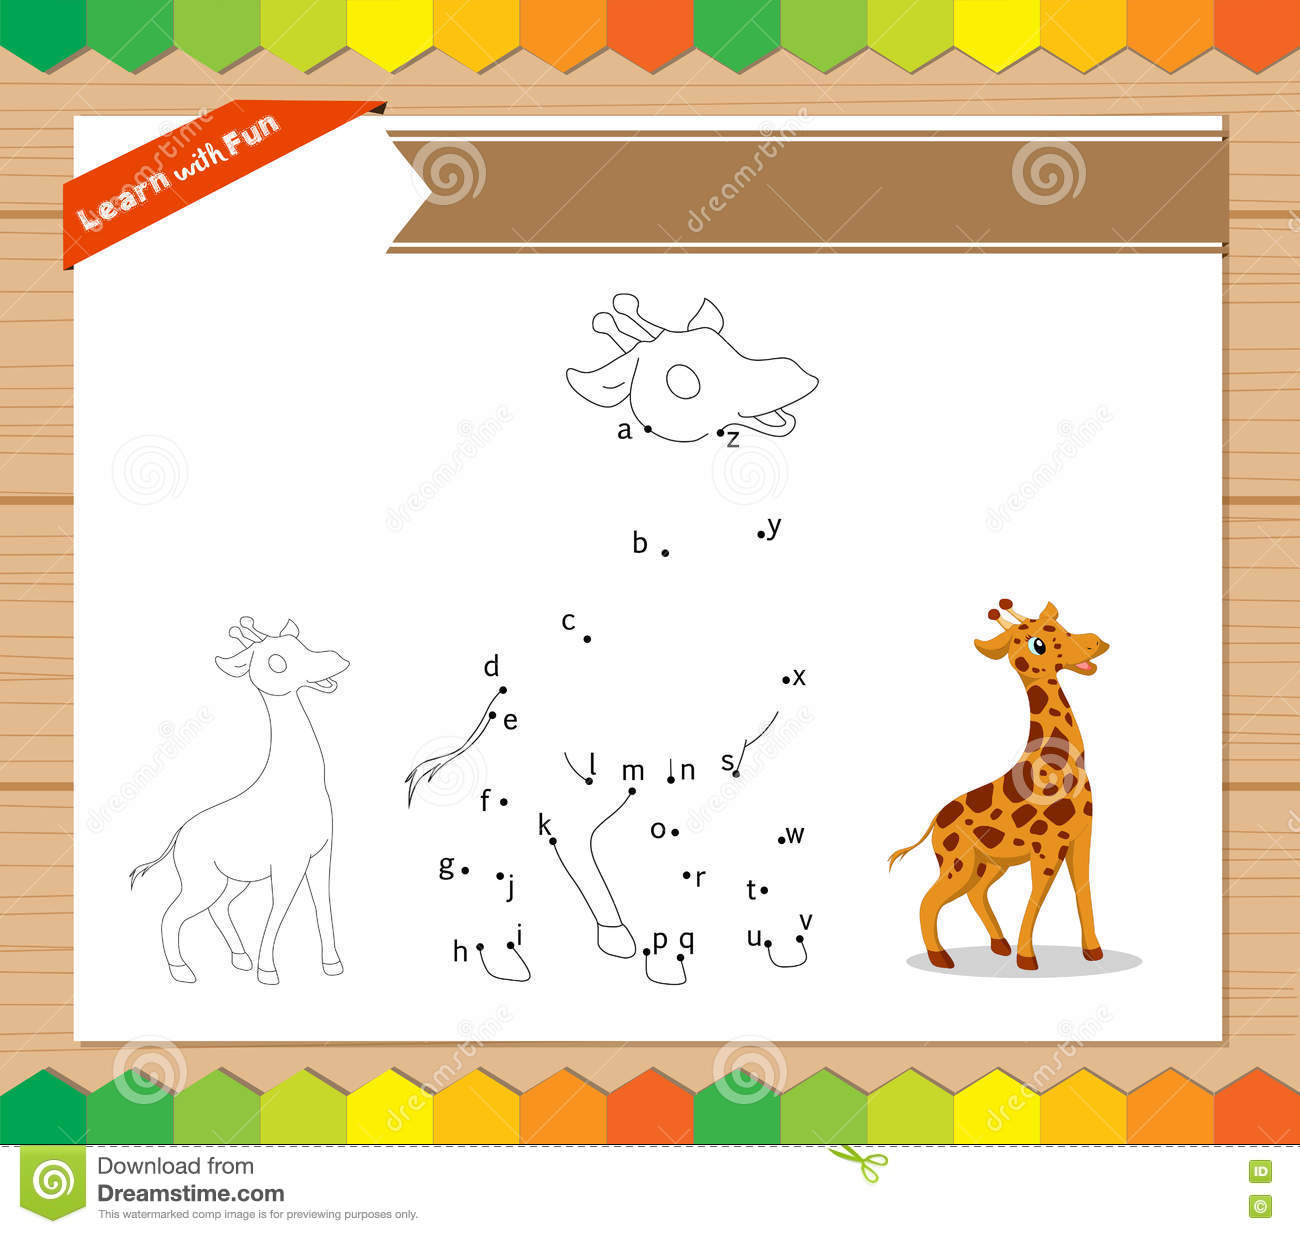 Cartoon Giraffe Dot To Dot Educational Game For Kids